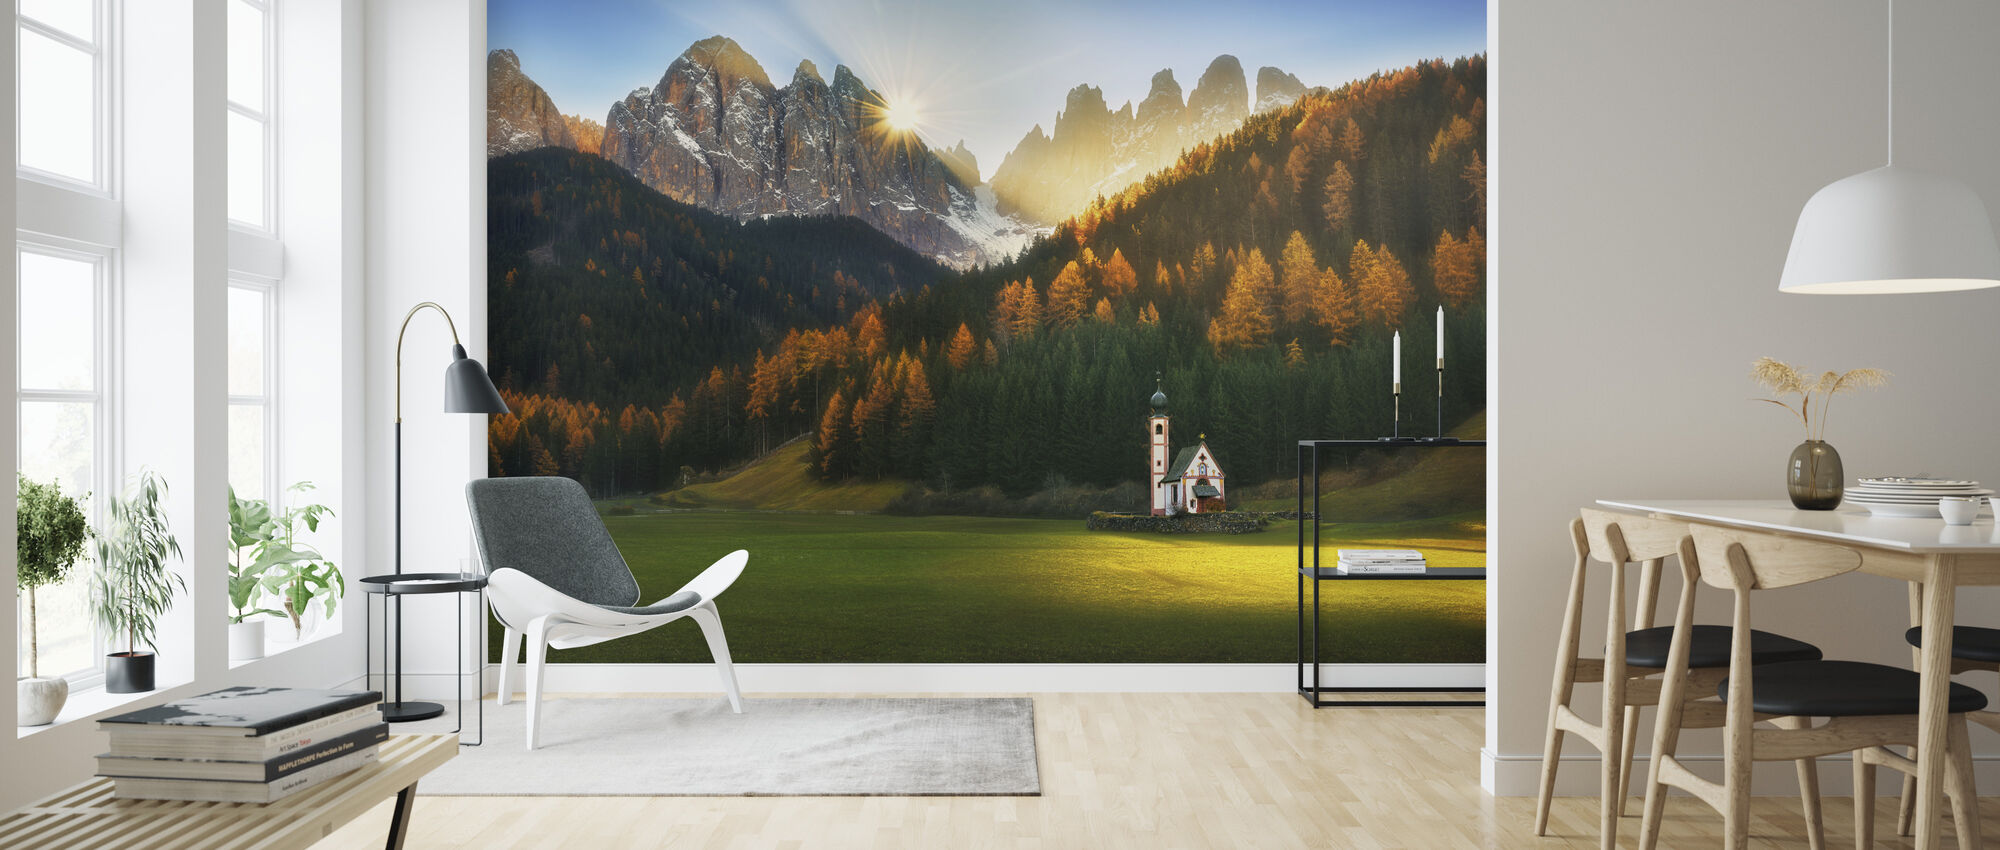 Santa Maddalena - Wallpaper - Living Room